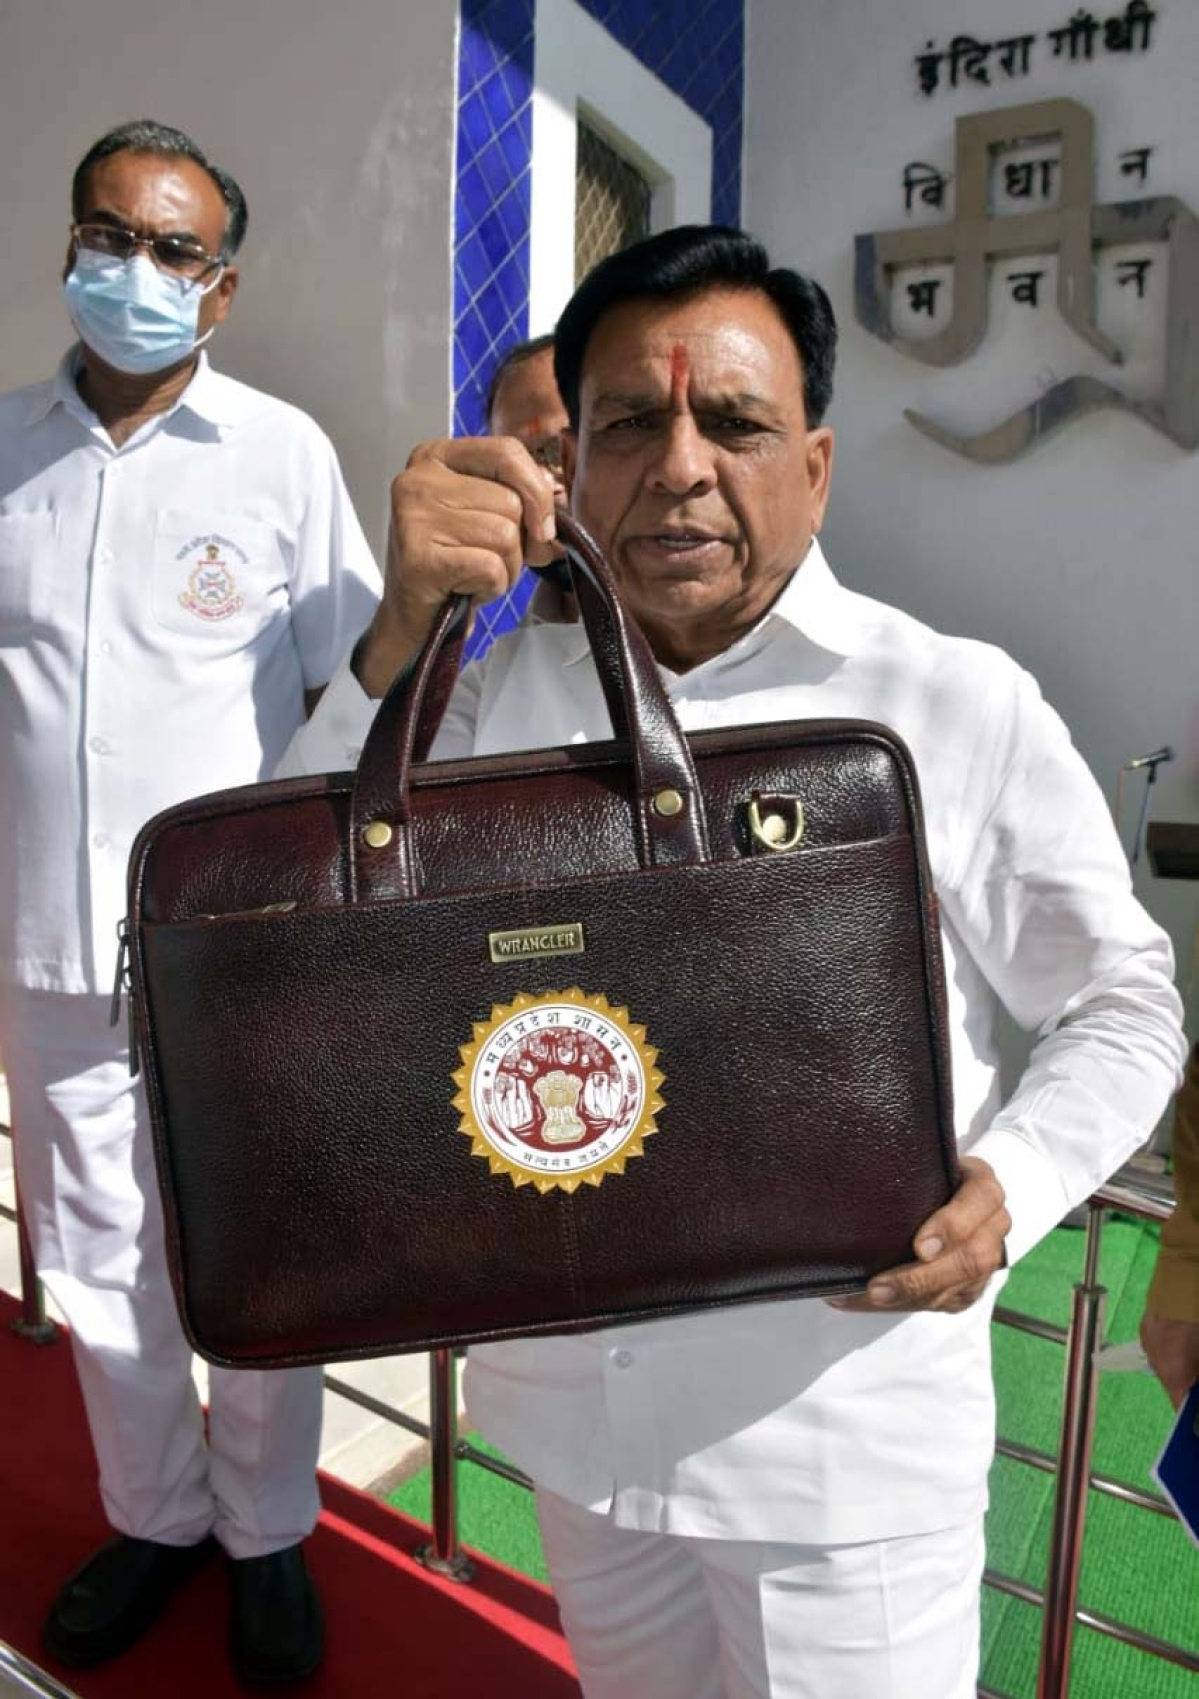 Finance minister Jagdish Devda on his way to the Vidhan Sabha  to present the Budget on Tuesday.